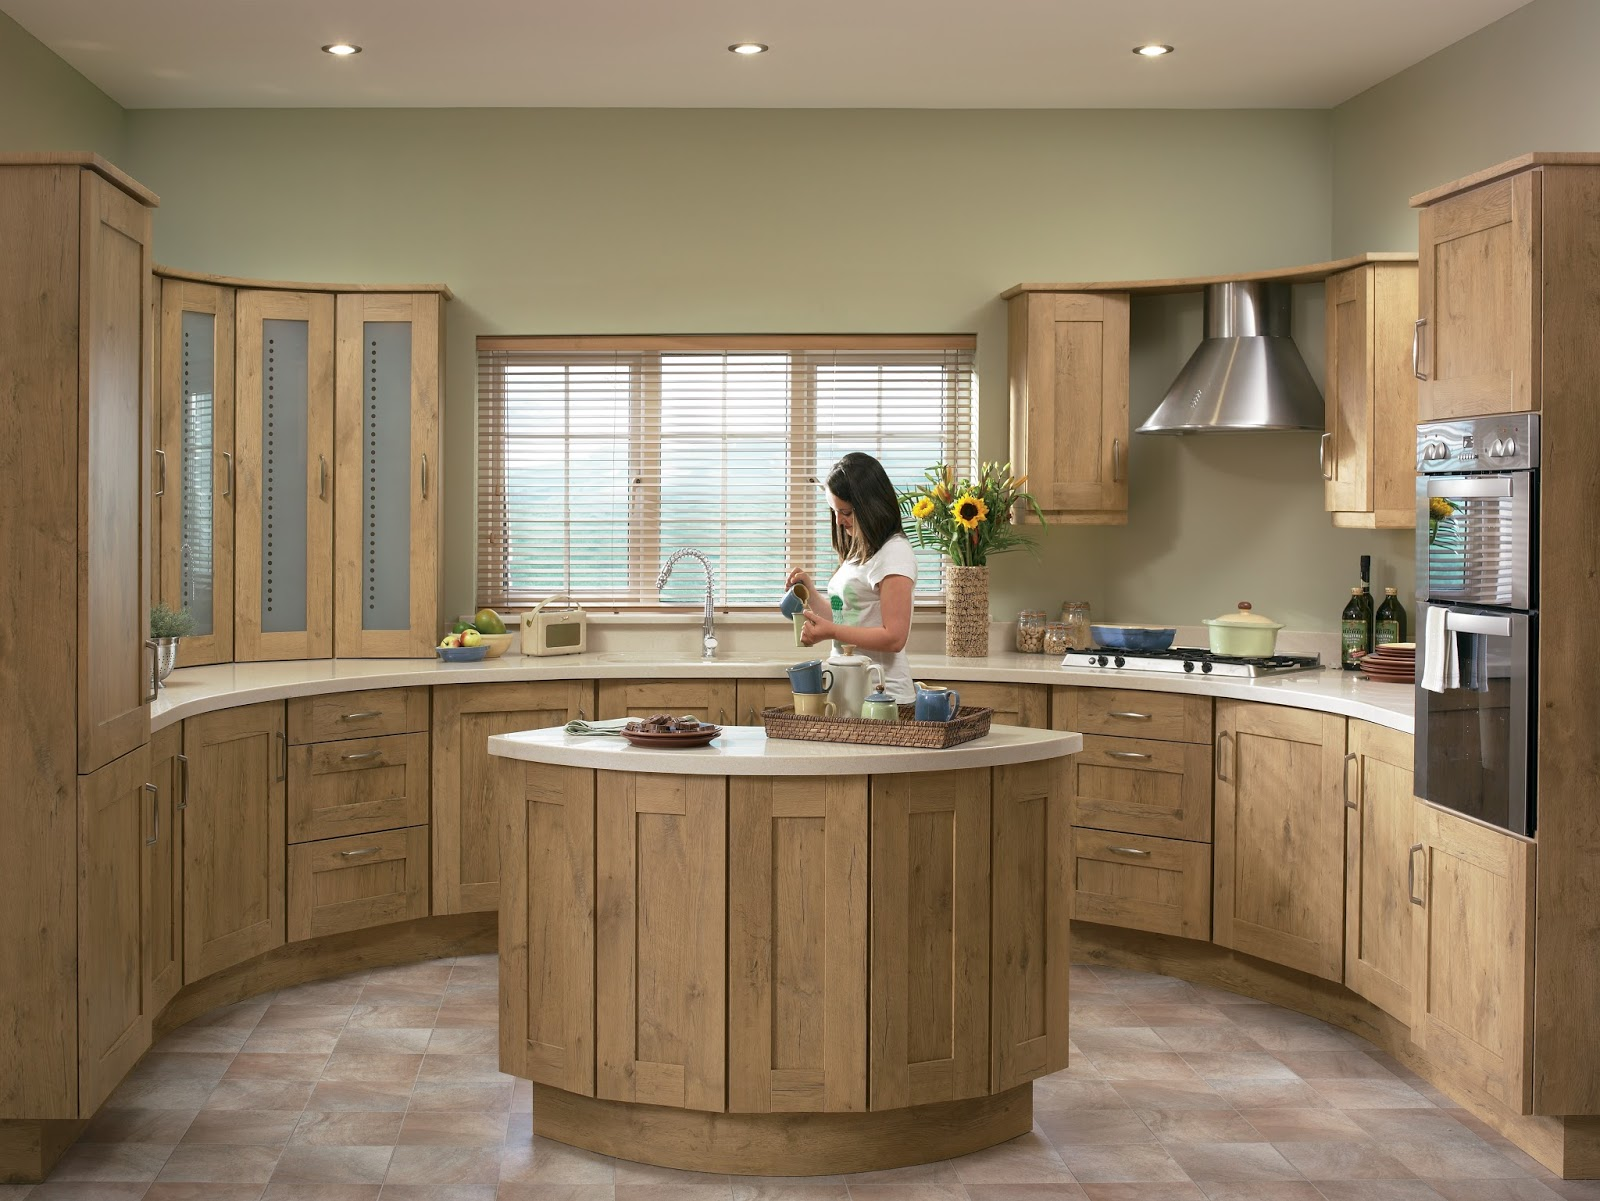 The Kitchen Yard  Made to Order Kitchen Units Doors and Accessories The Tuscany Kitchen with